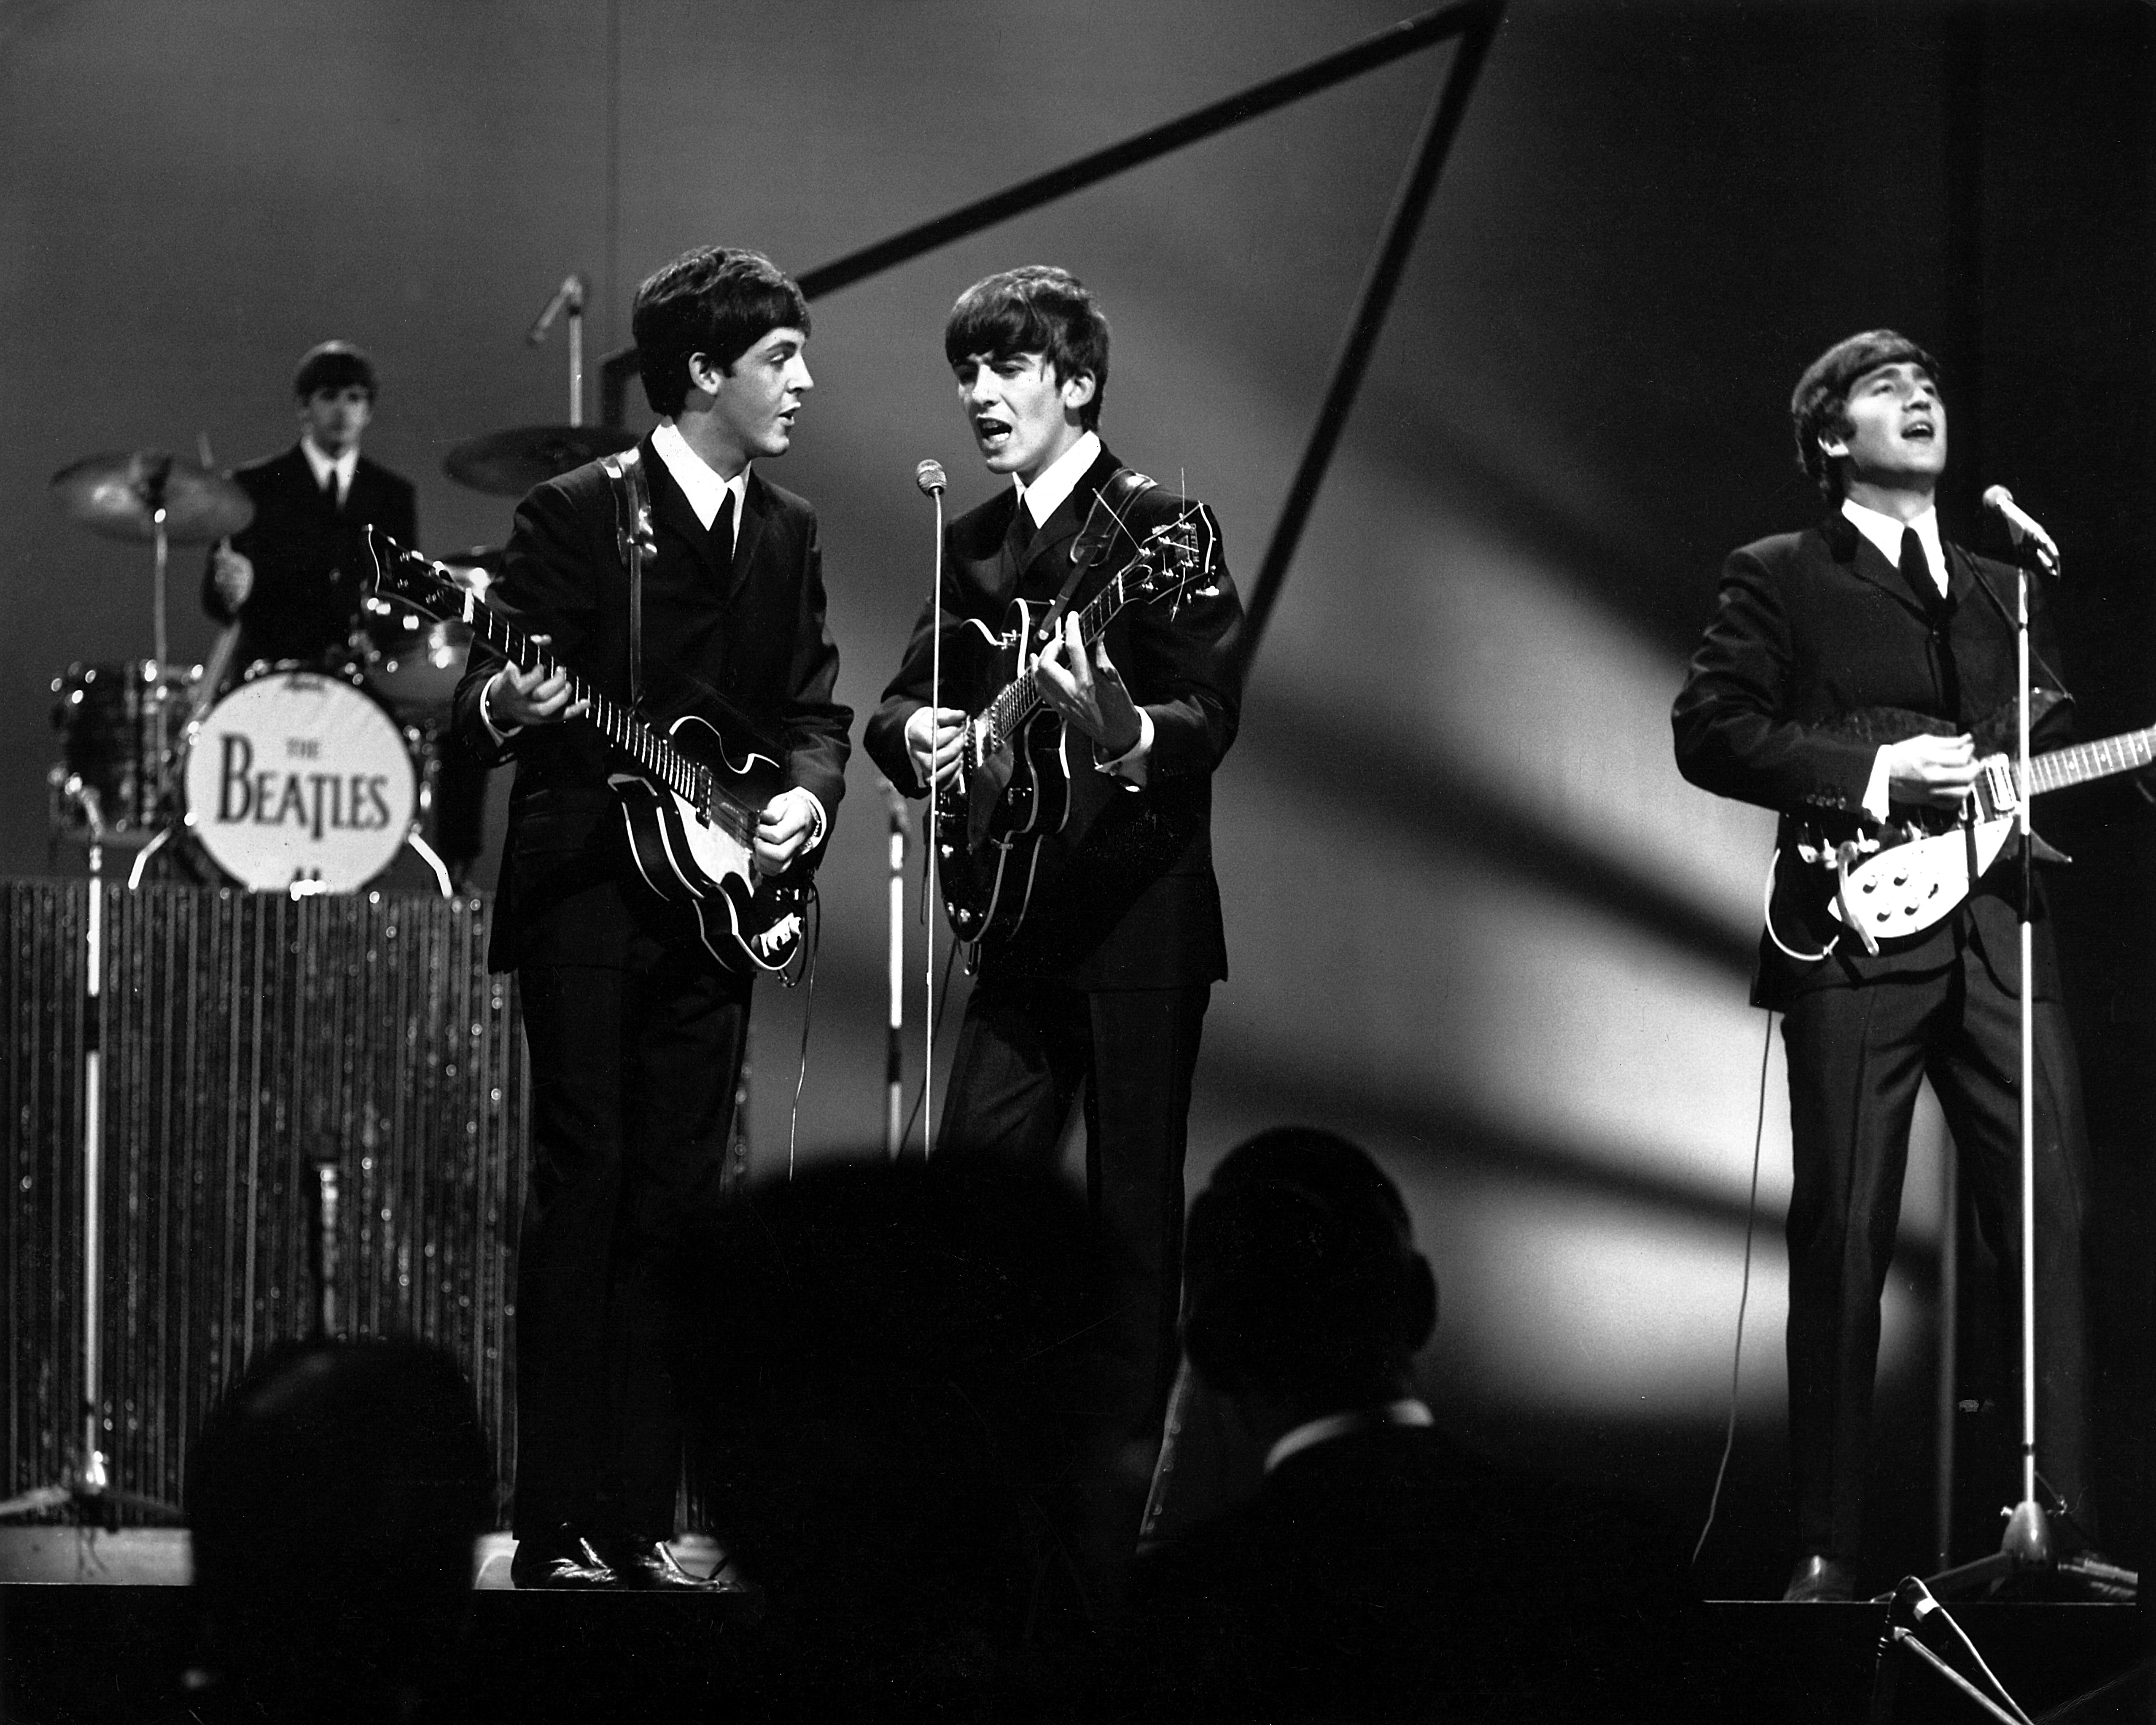 The Beatles - Ringo Starr, Paul McCartney, George Harrison, John LennonThe Beatles at the BBC Studios, London, Britain - 1963